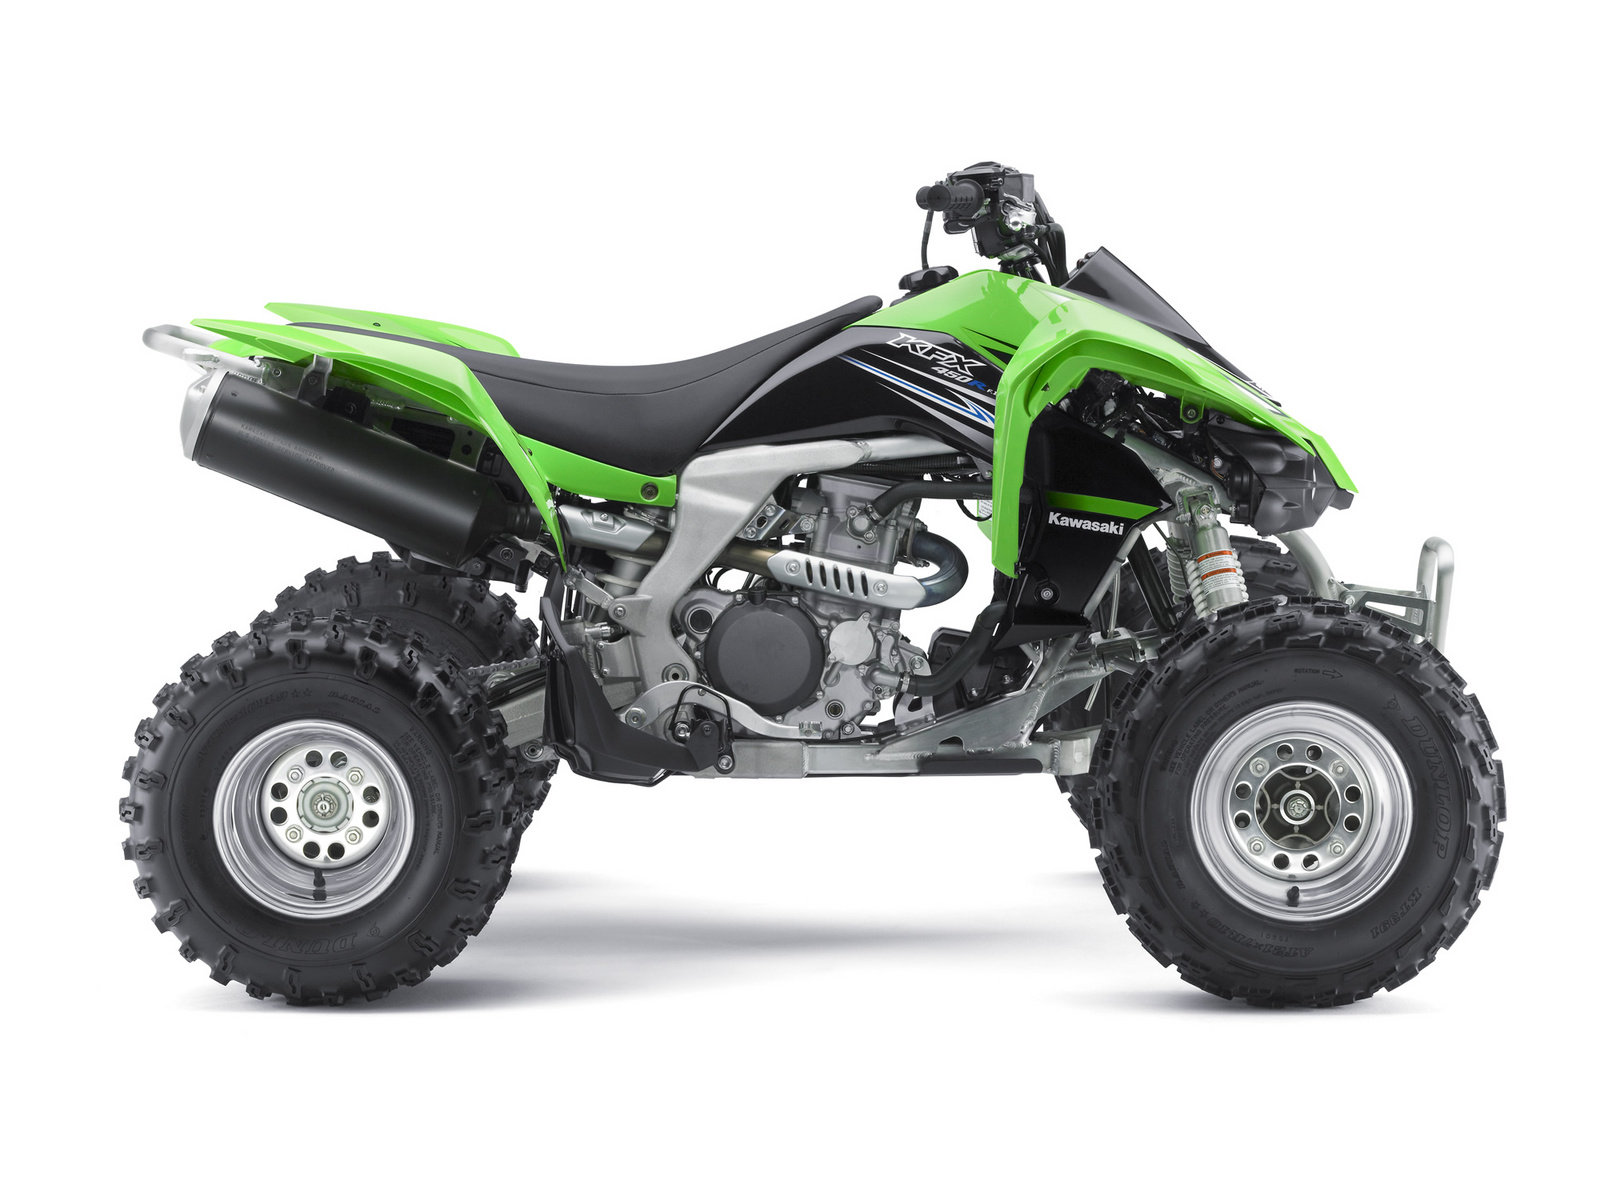 2012 kawasaki kfx 450r picture 401483 motorcycle review top speed. Black Bedroom Furniture Sets. Home Design Ideas